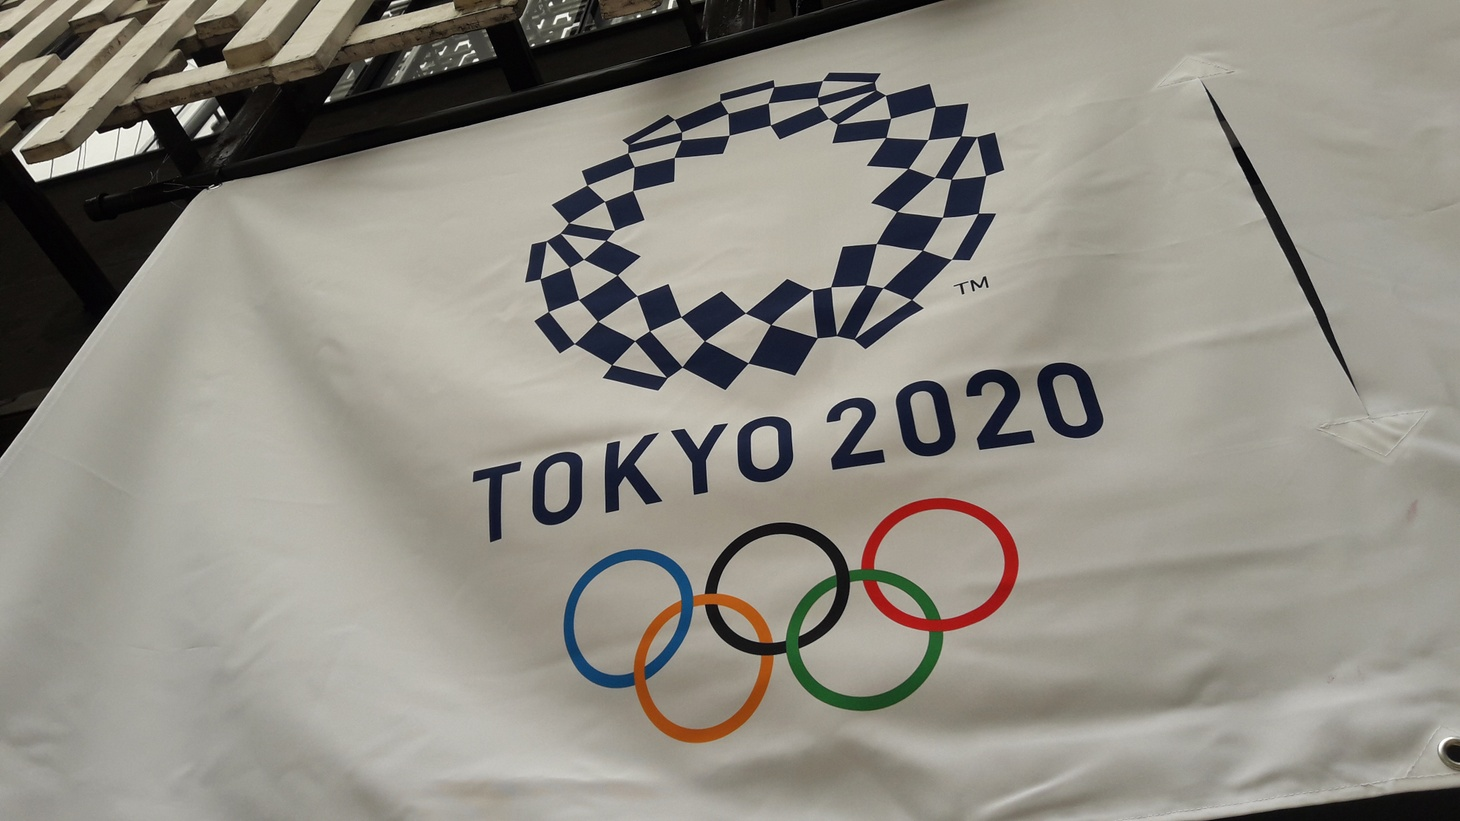 The 2020 Tokyo Olympics were rescheduled for 2021 and begin in just a few weeks. The Olympics are hugely important to NBCUniversal and the IOC, so the Games are forging ahead, despite health risks.